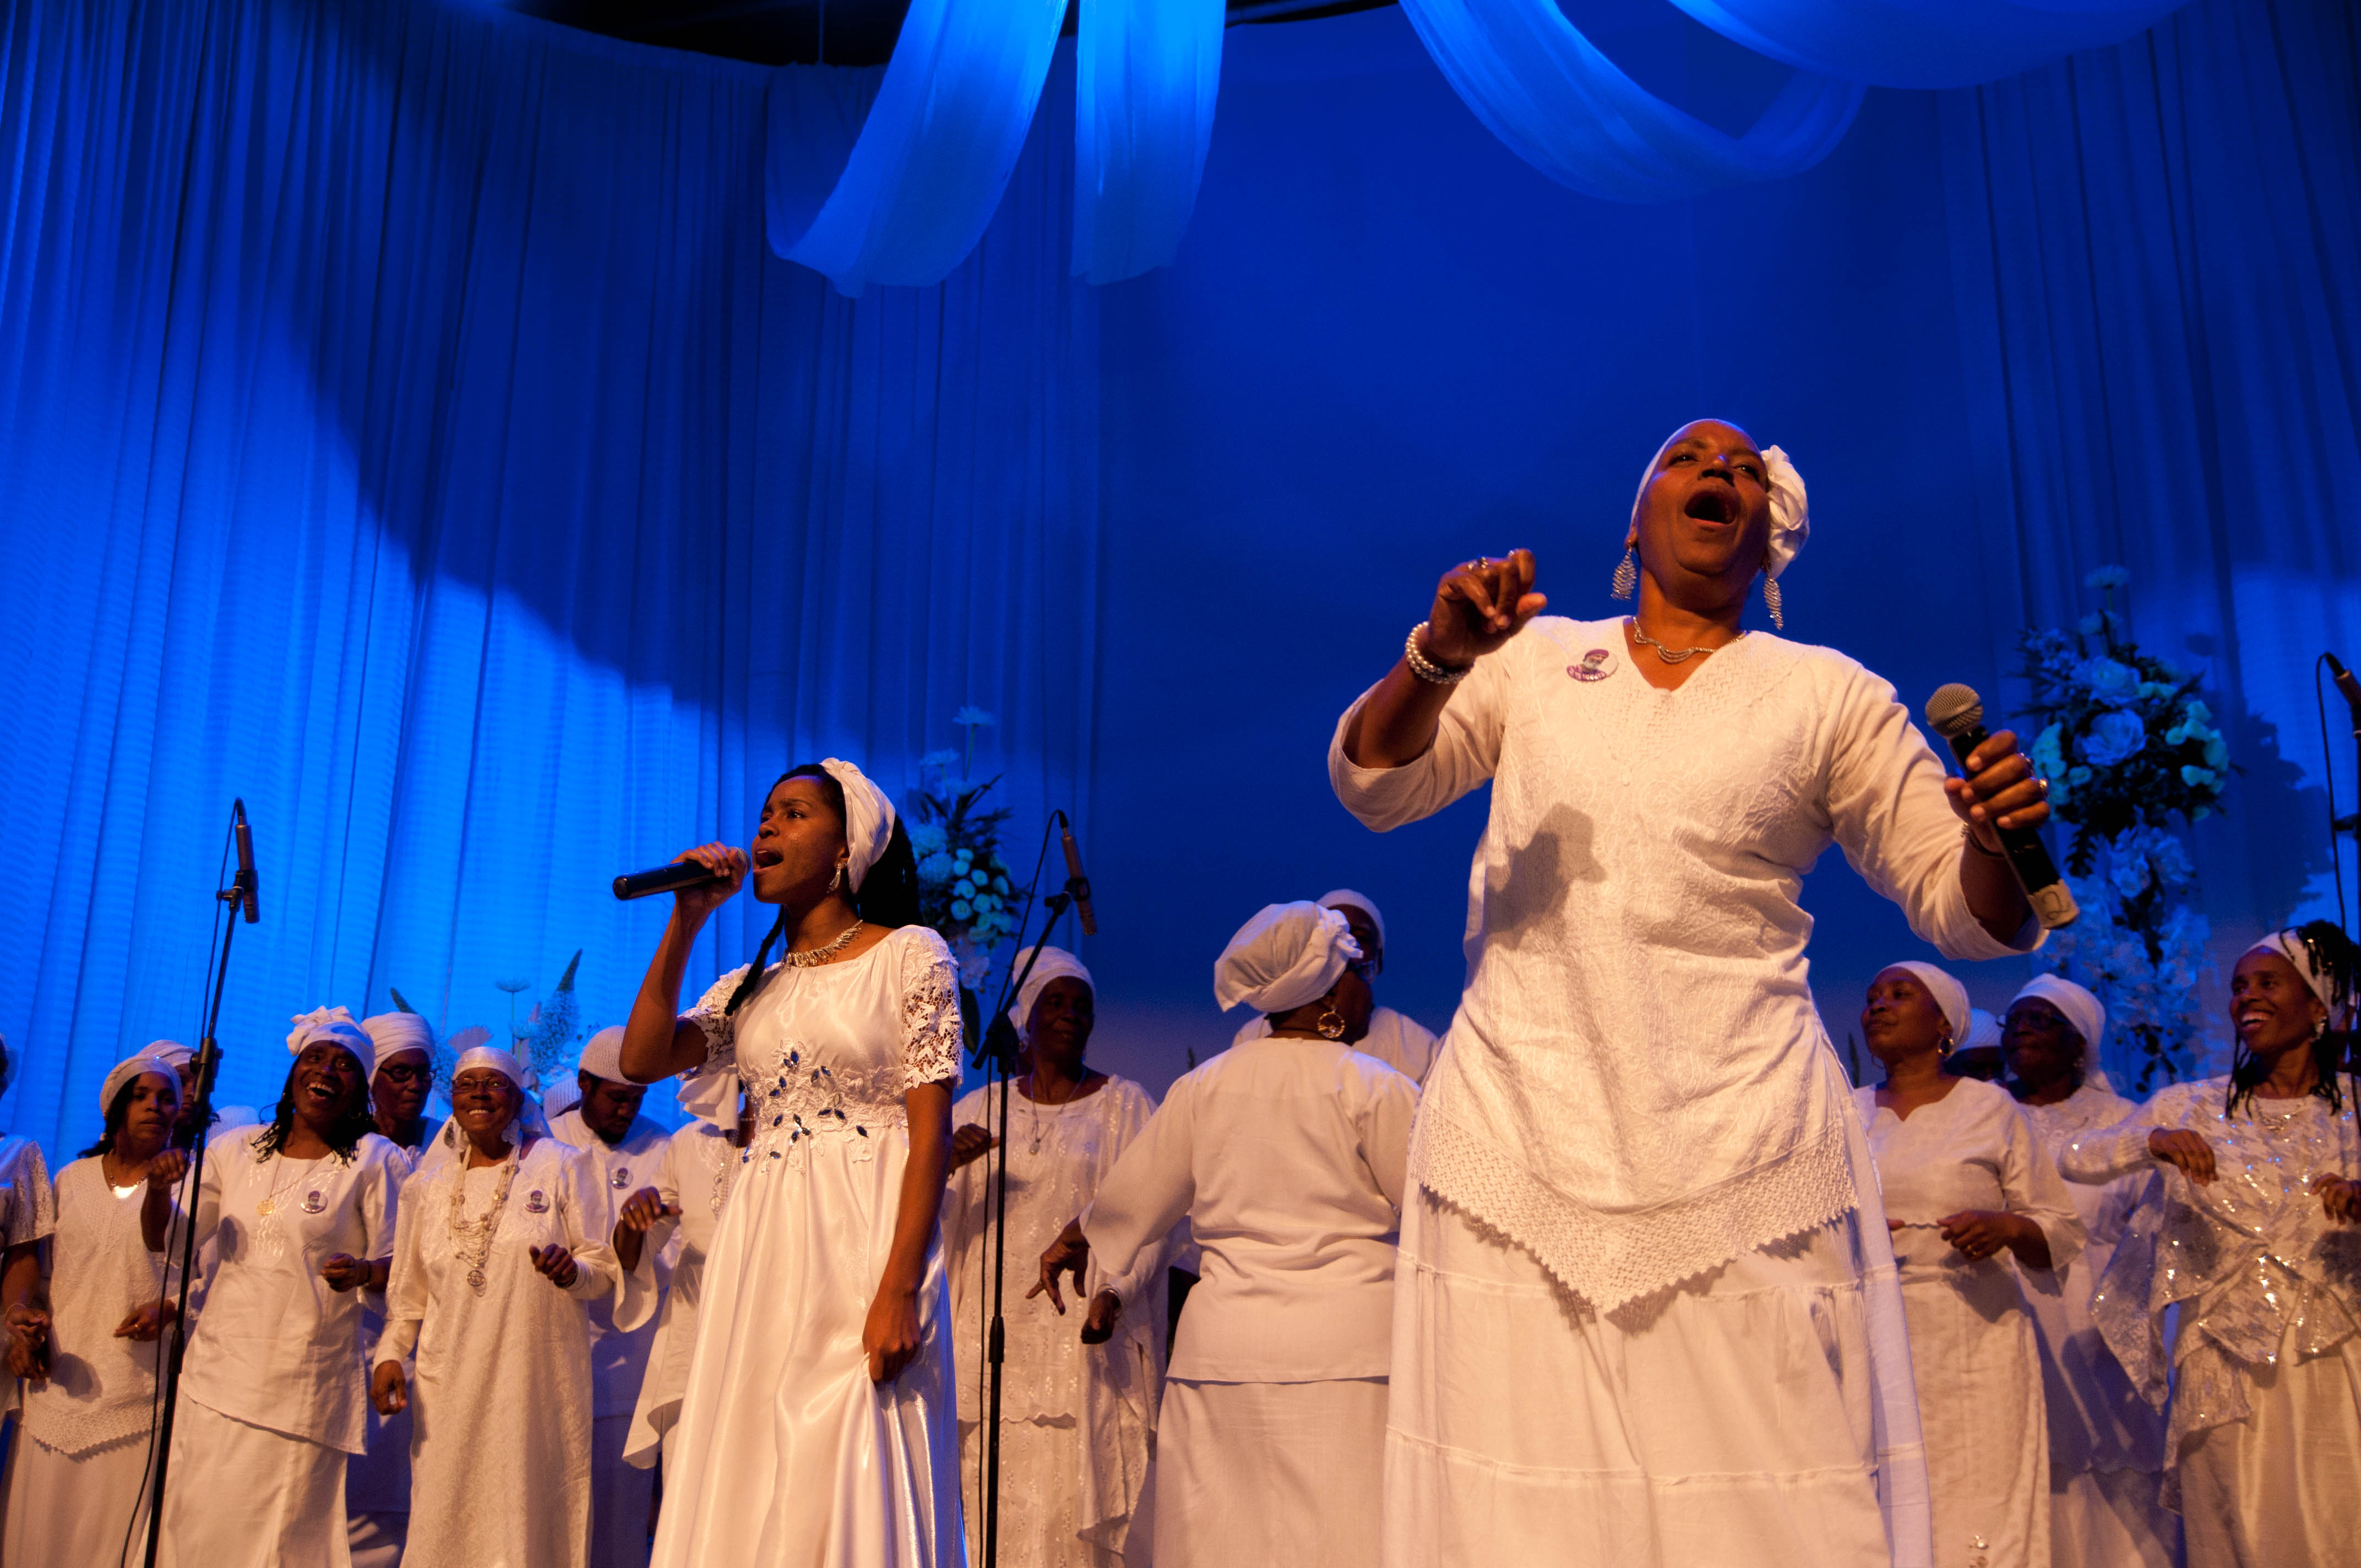 With song and dance, African Hebrew Israelites honor their departed leader